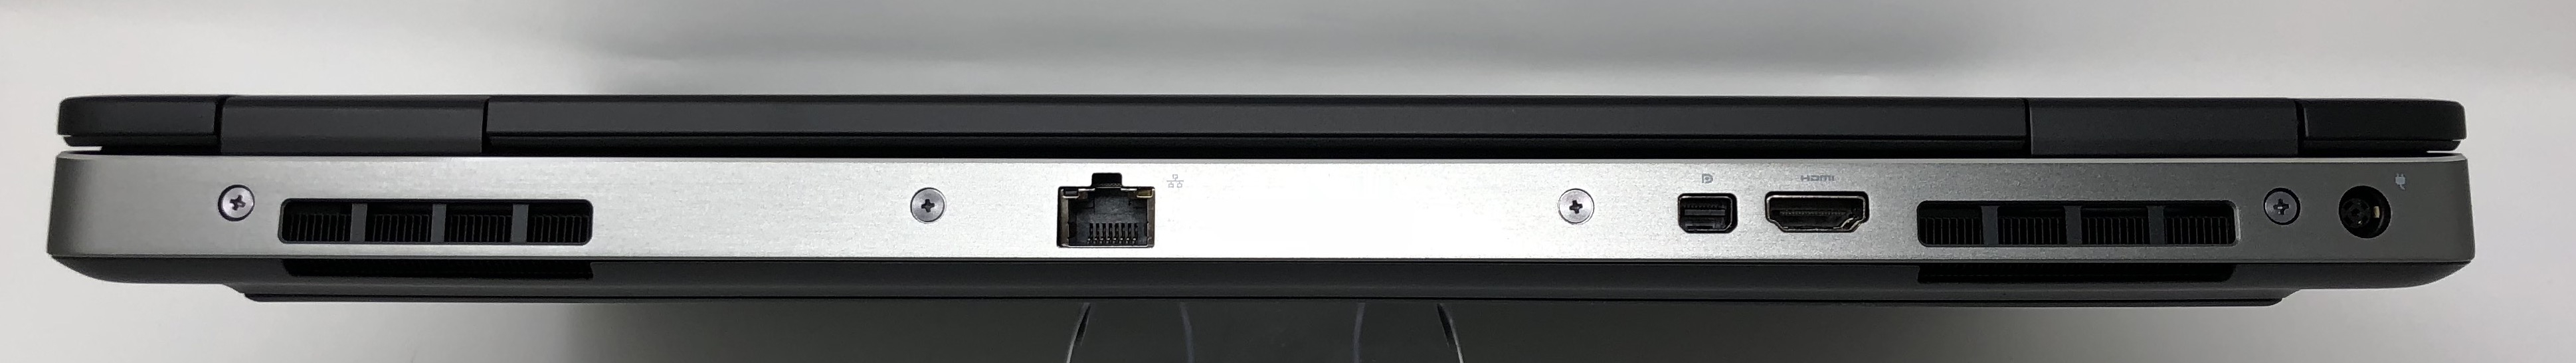 Recommended for Precision 7530 by Dell Inc  - GTrusted